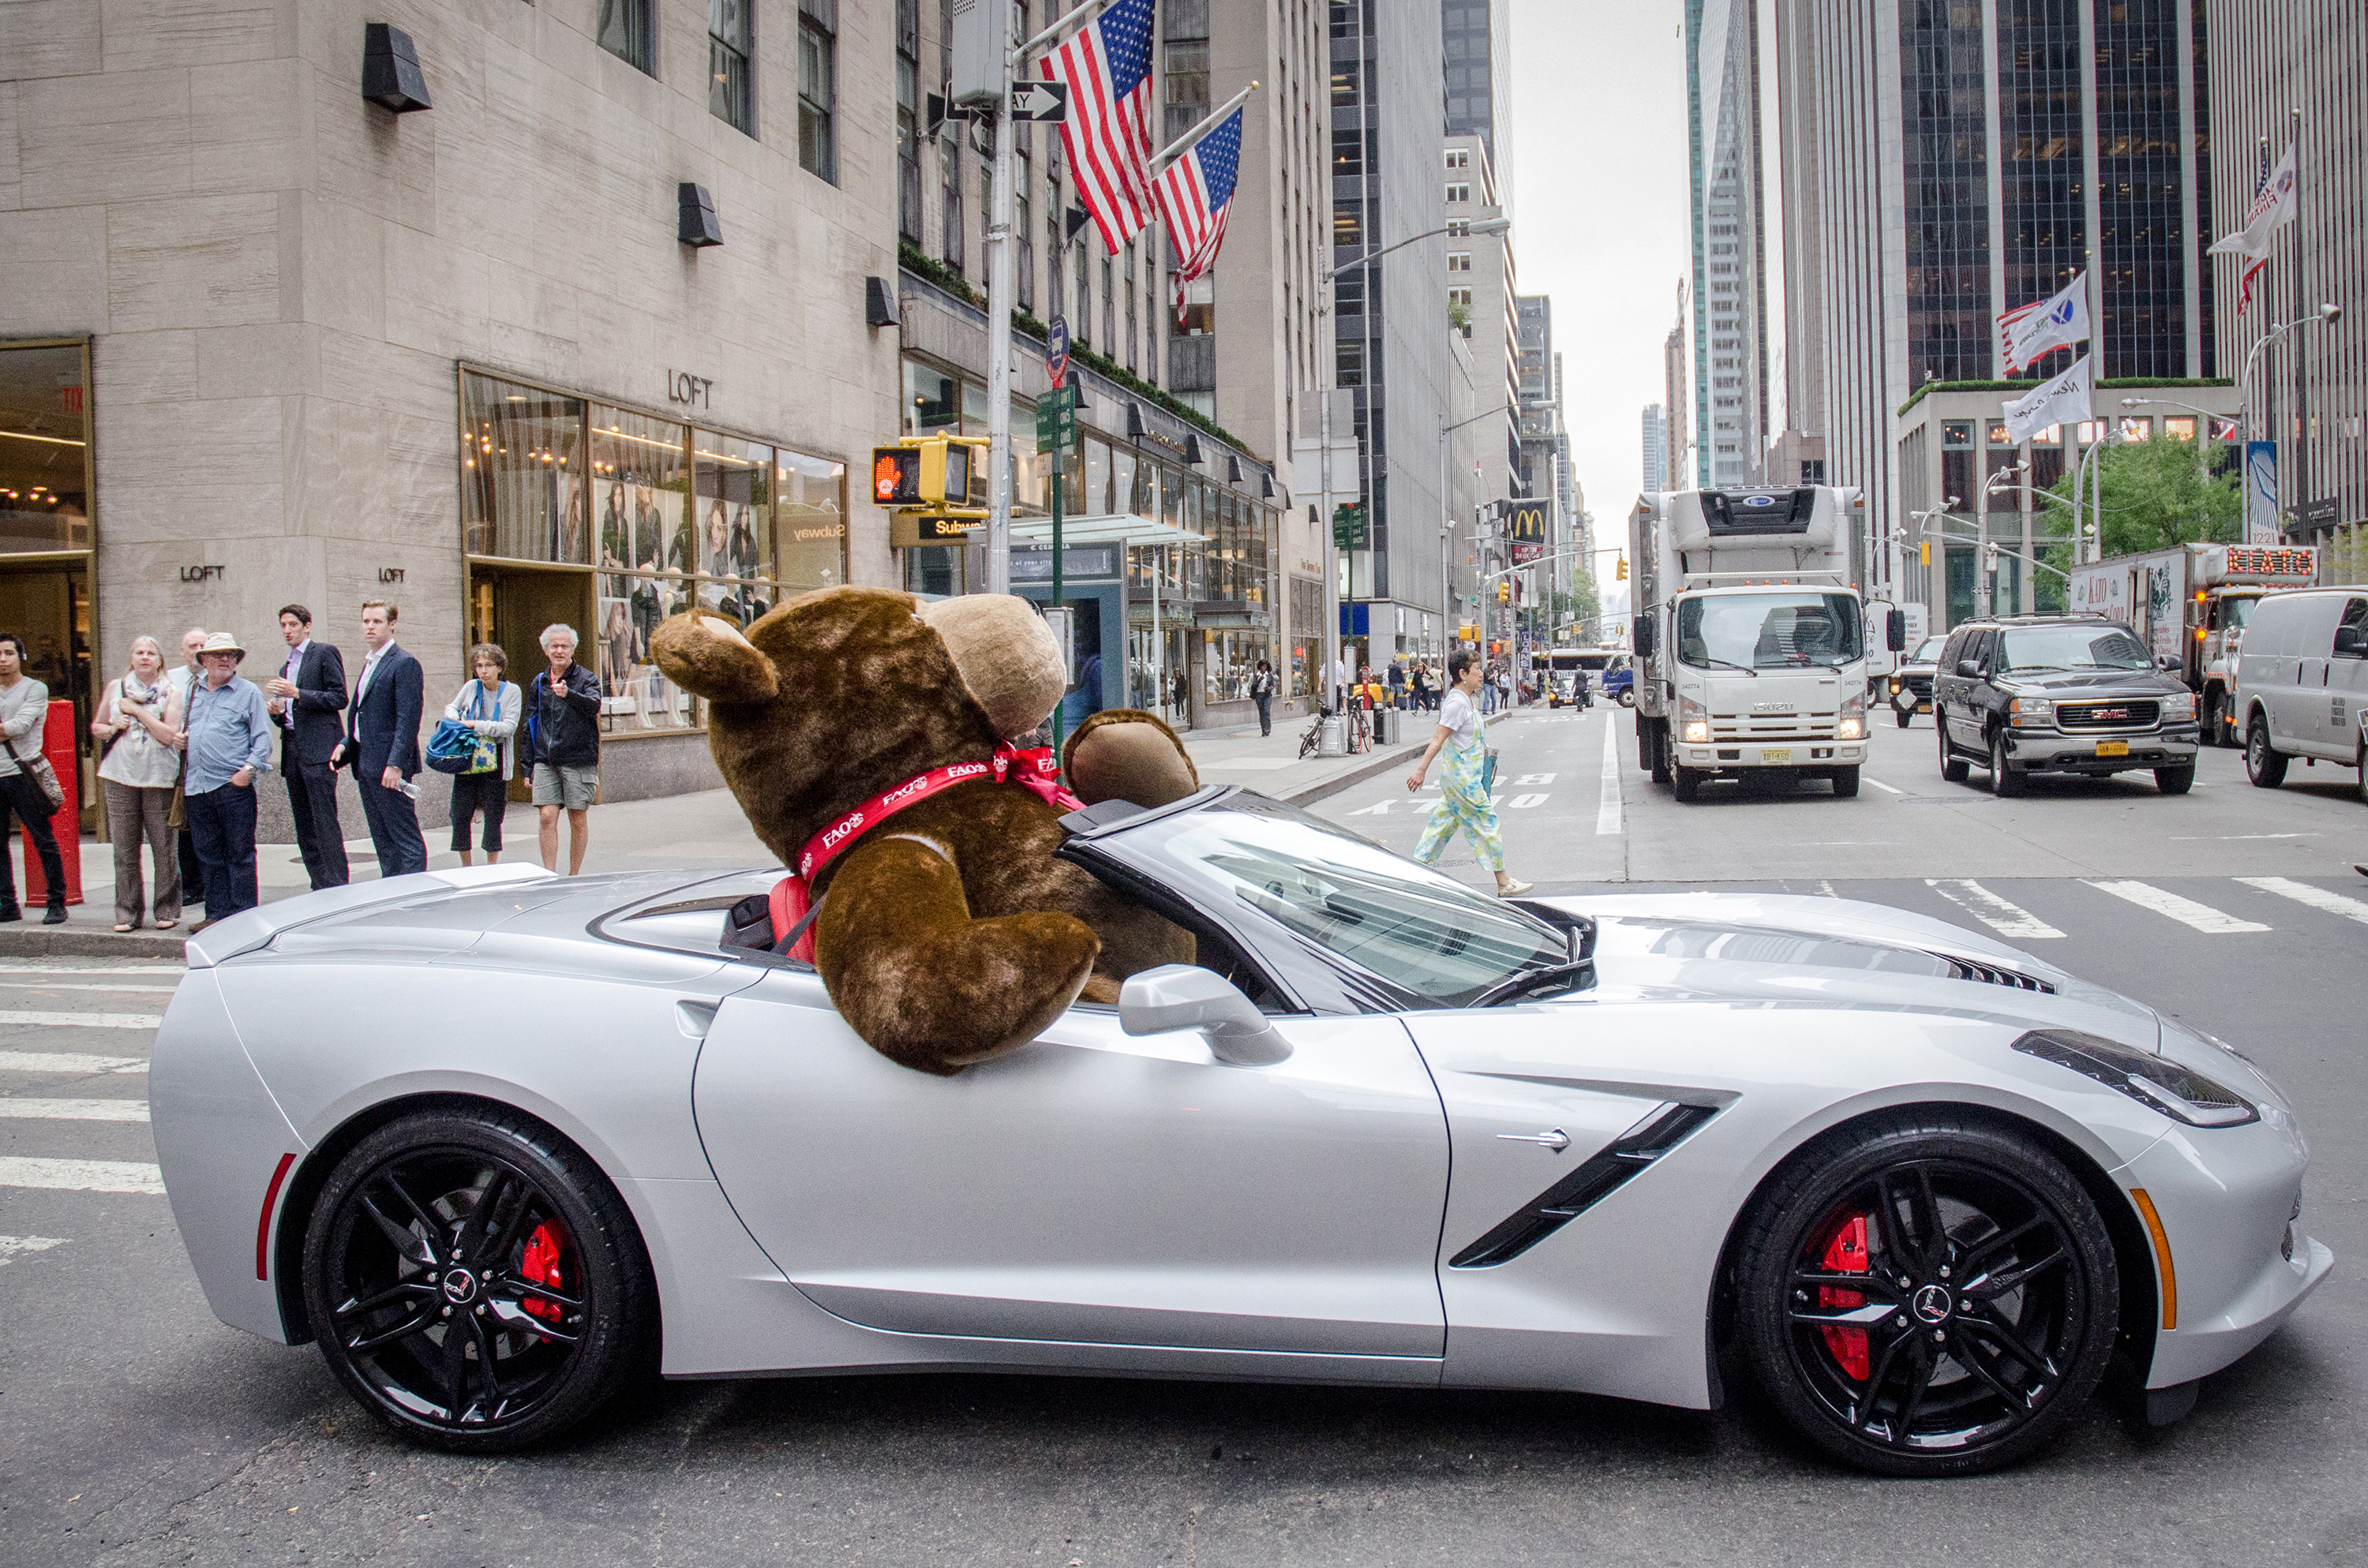 Giant teddy bear riding in a chevrolet corvette it 39 s not what you think autoevolution